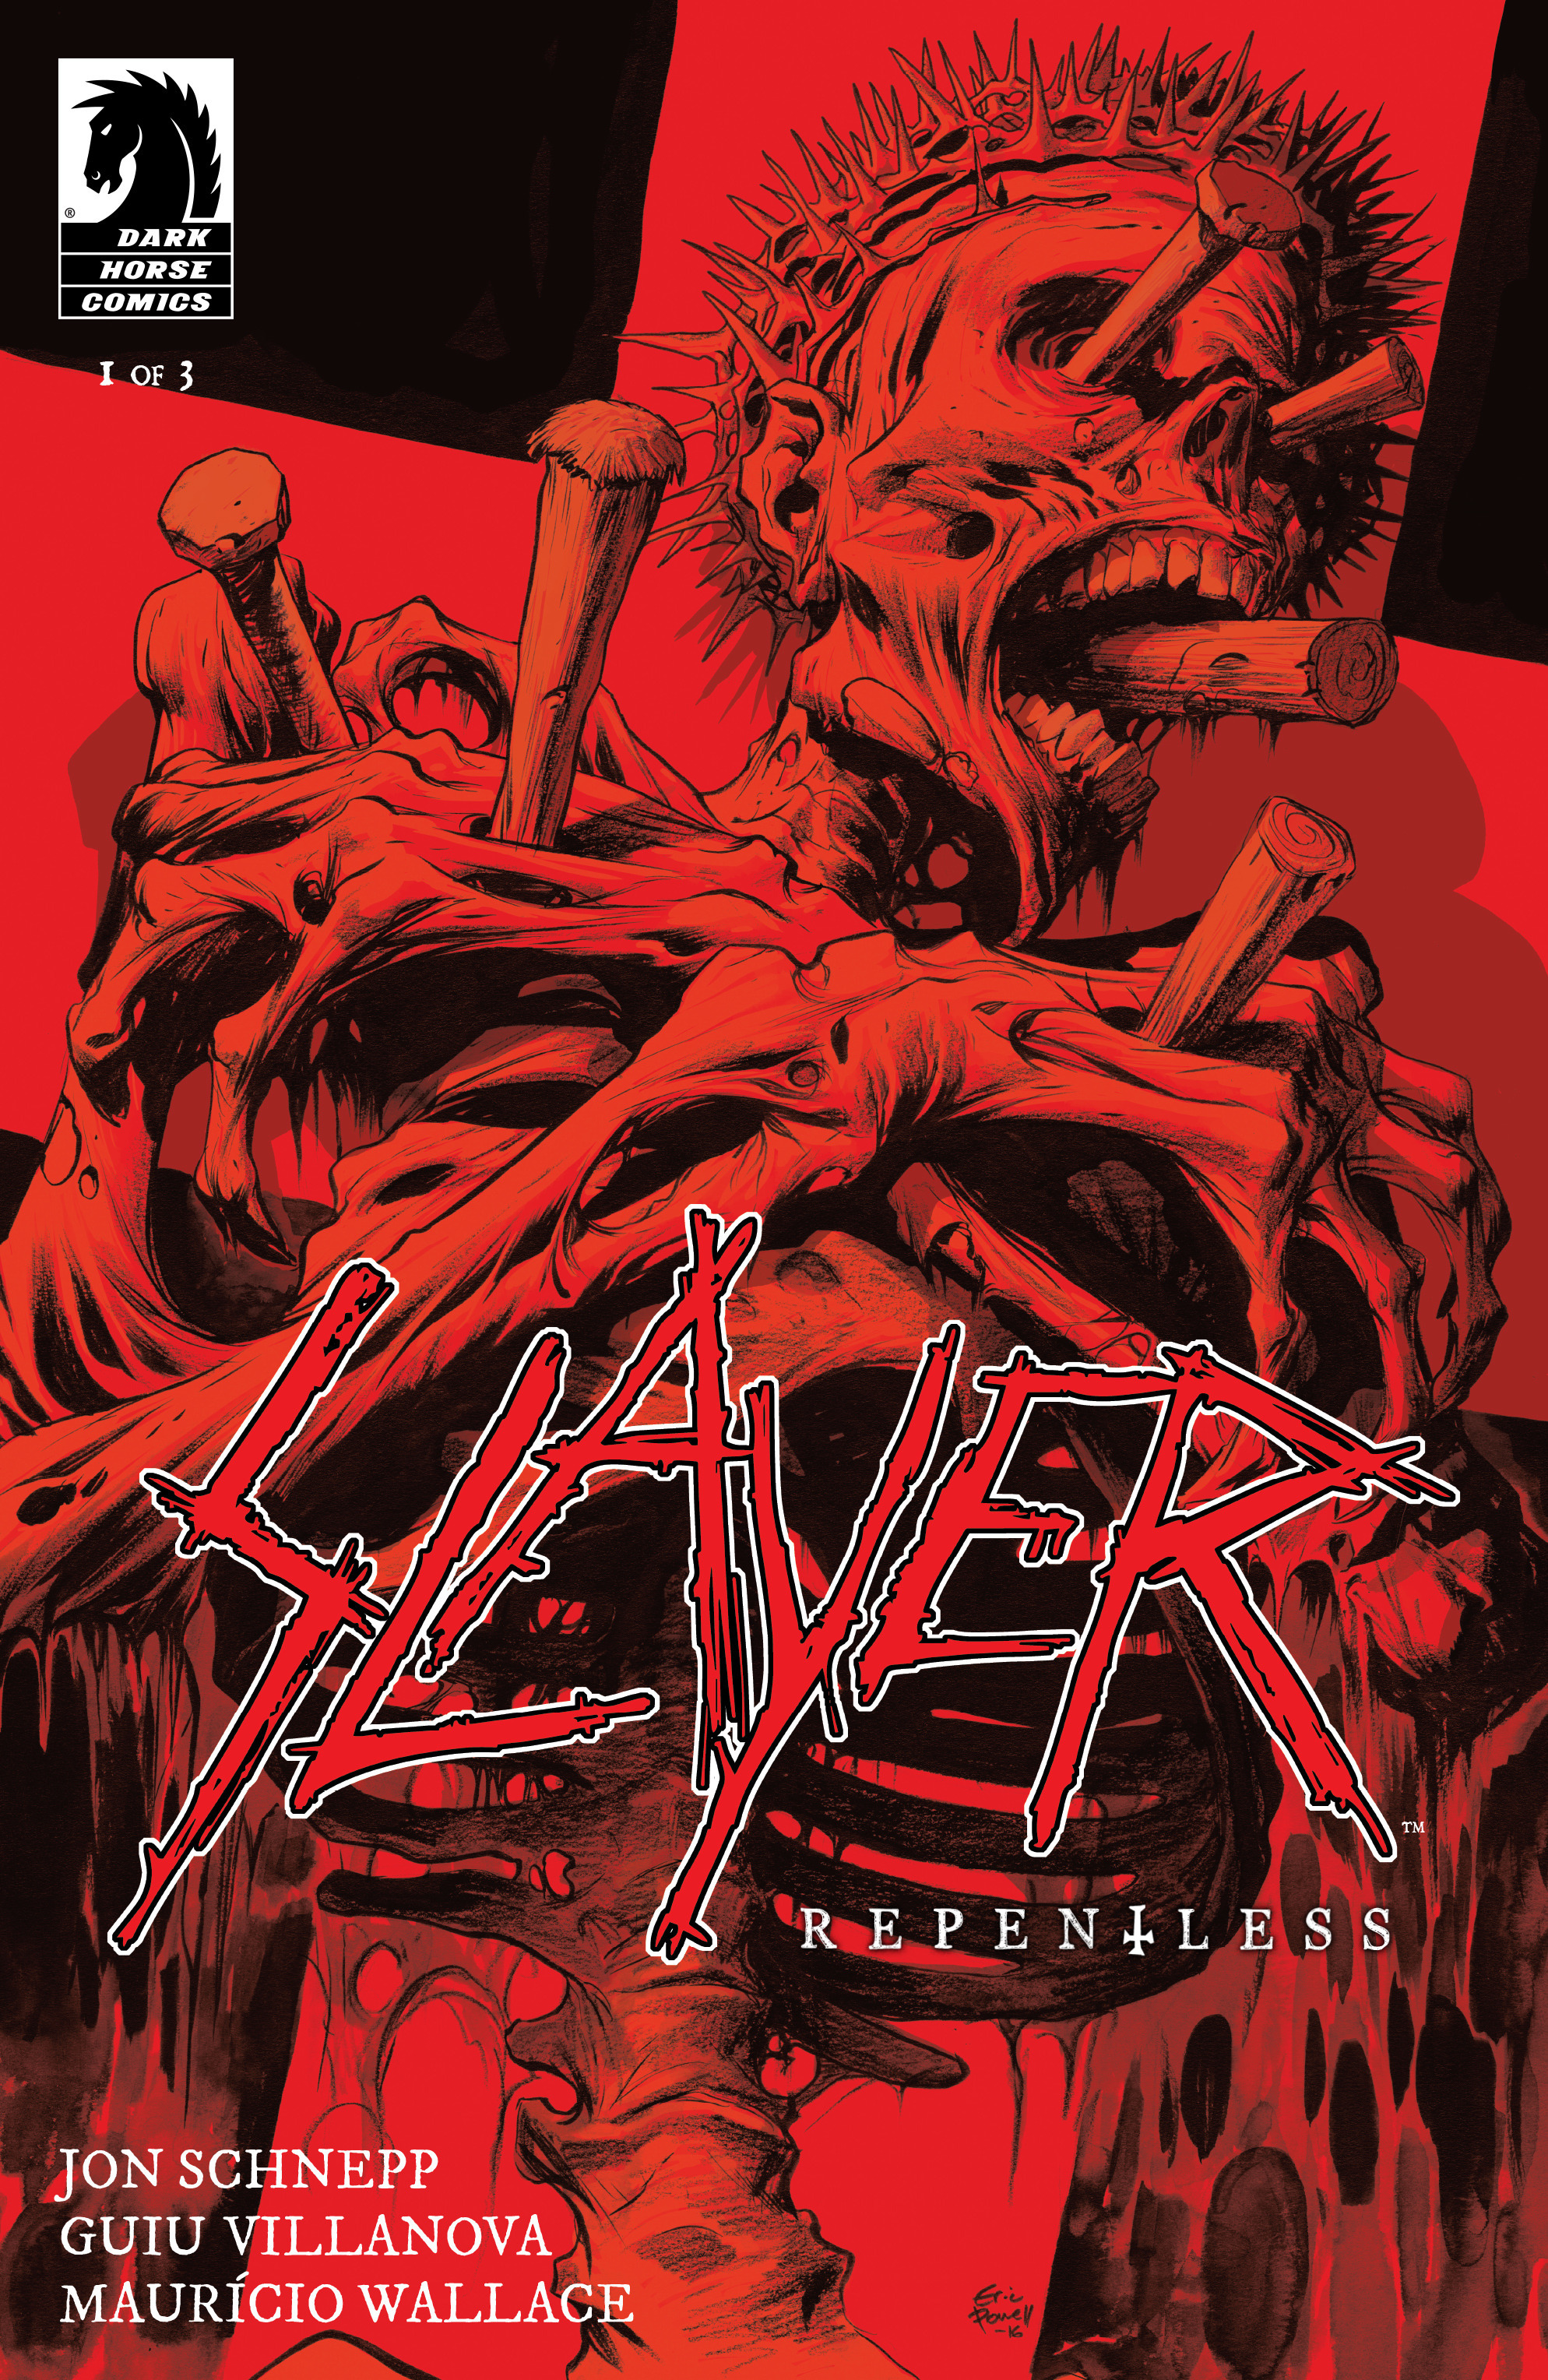 Read online Slayer: Repentless comic -  Issue #1 - 2